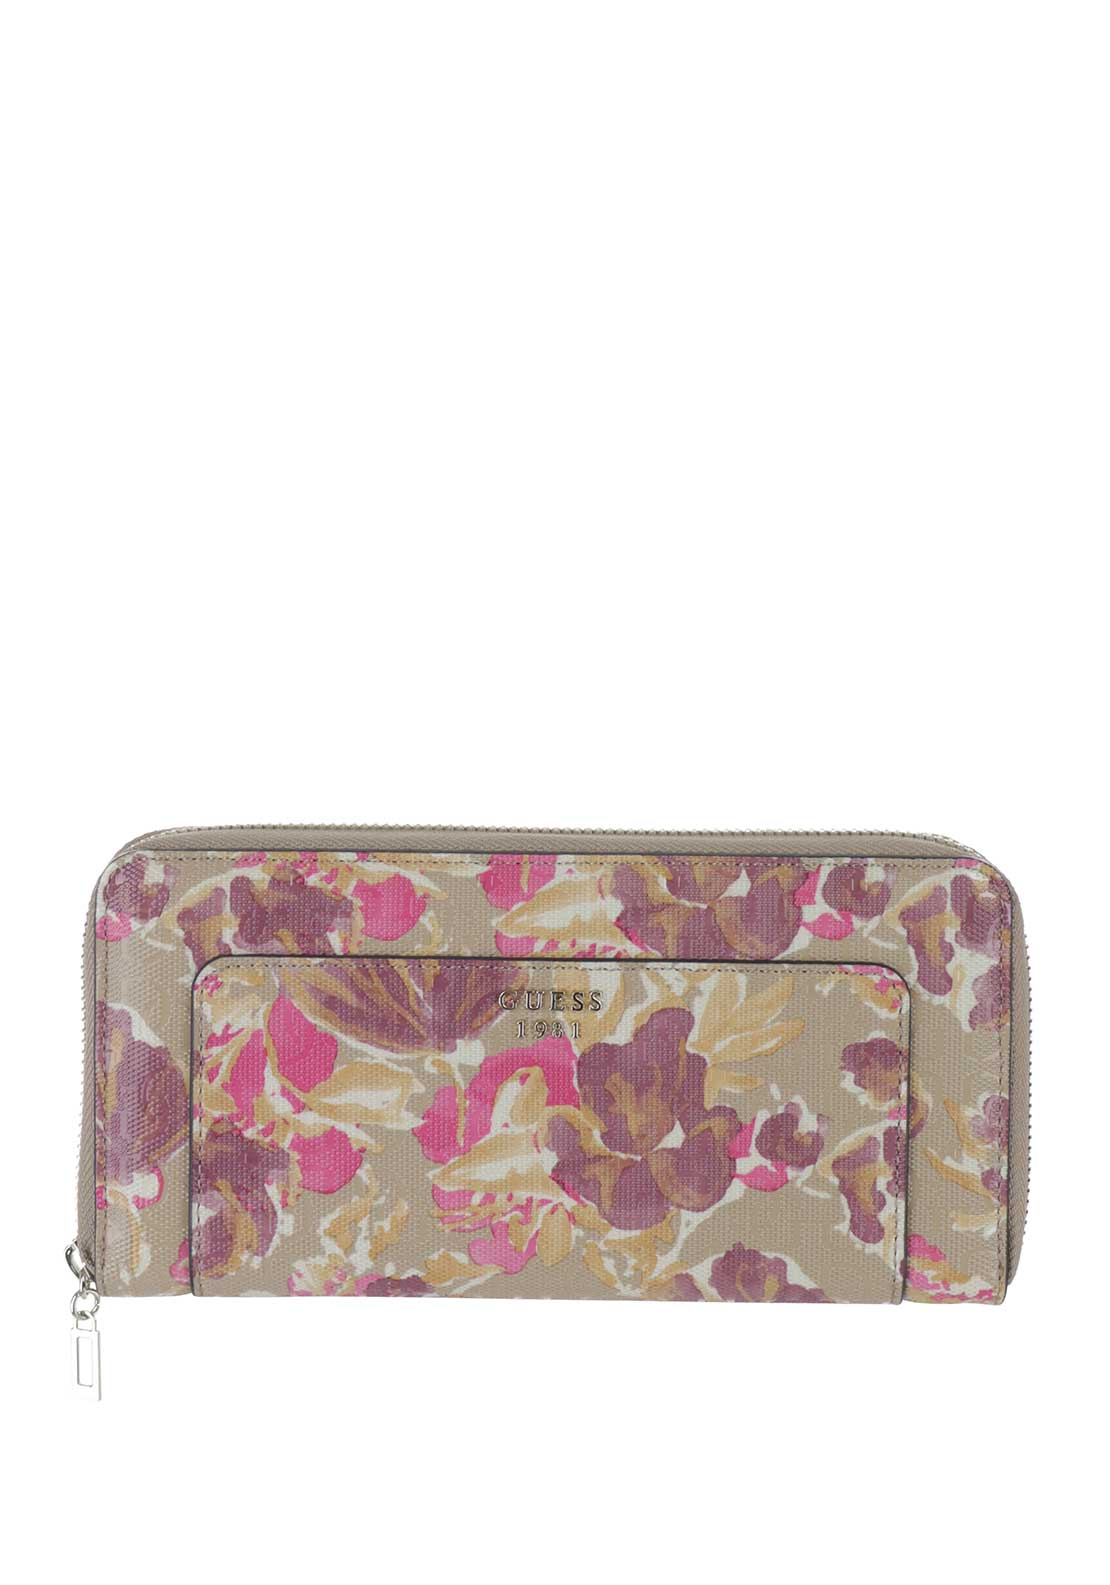 Guess Marian SLG Zip Around Purse, Floral Multi